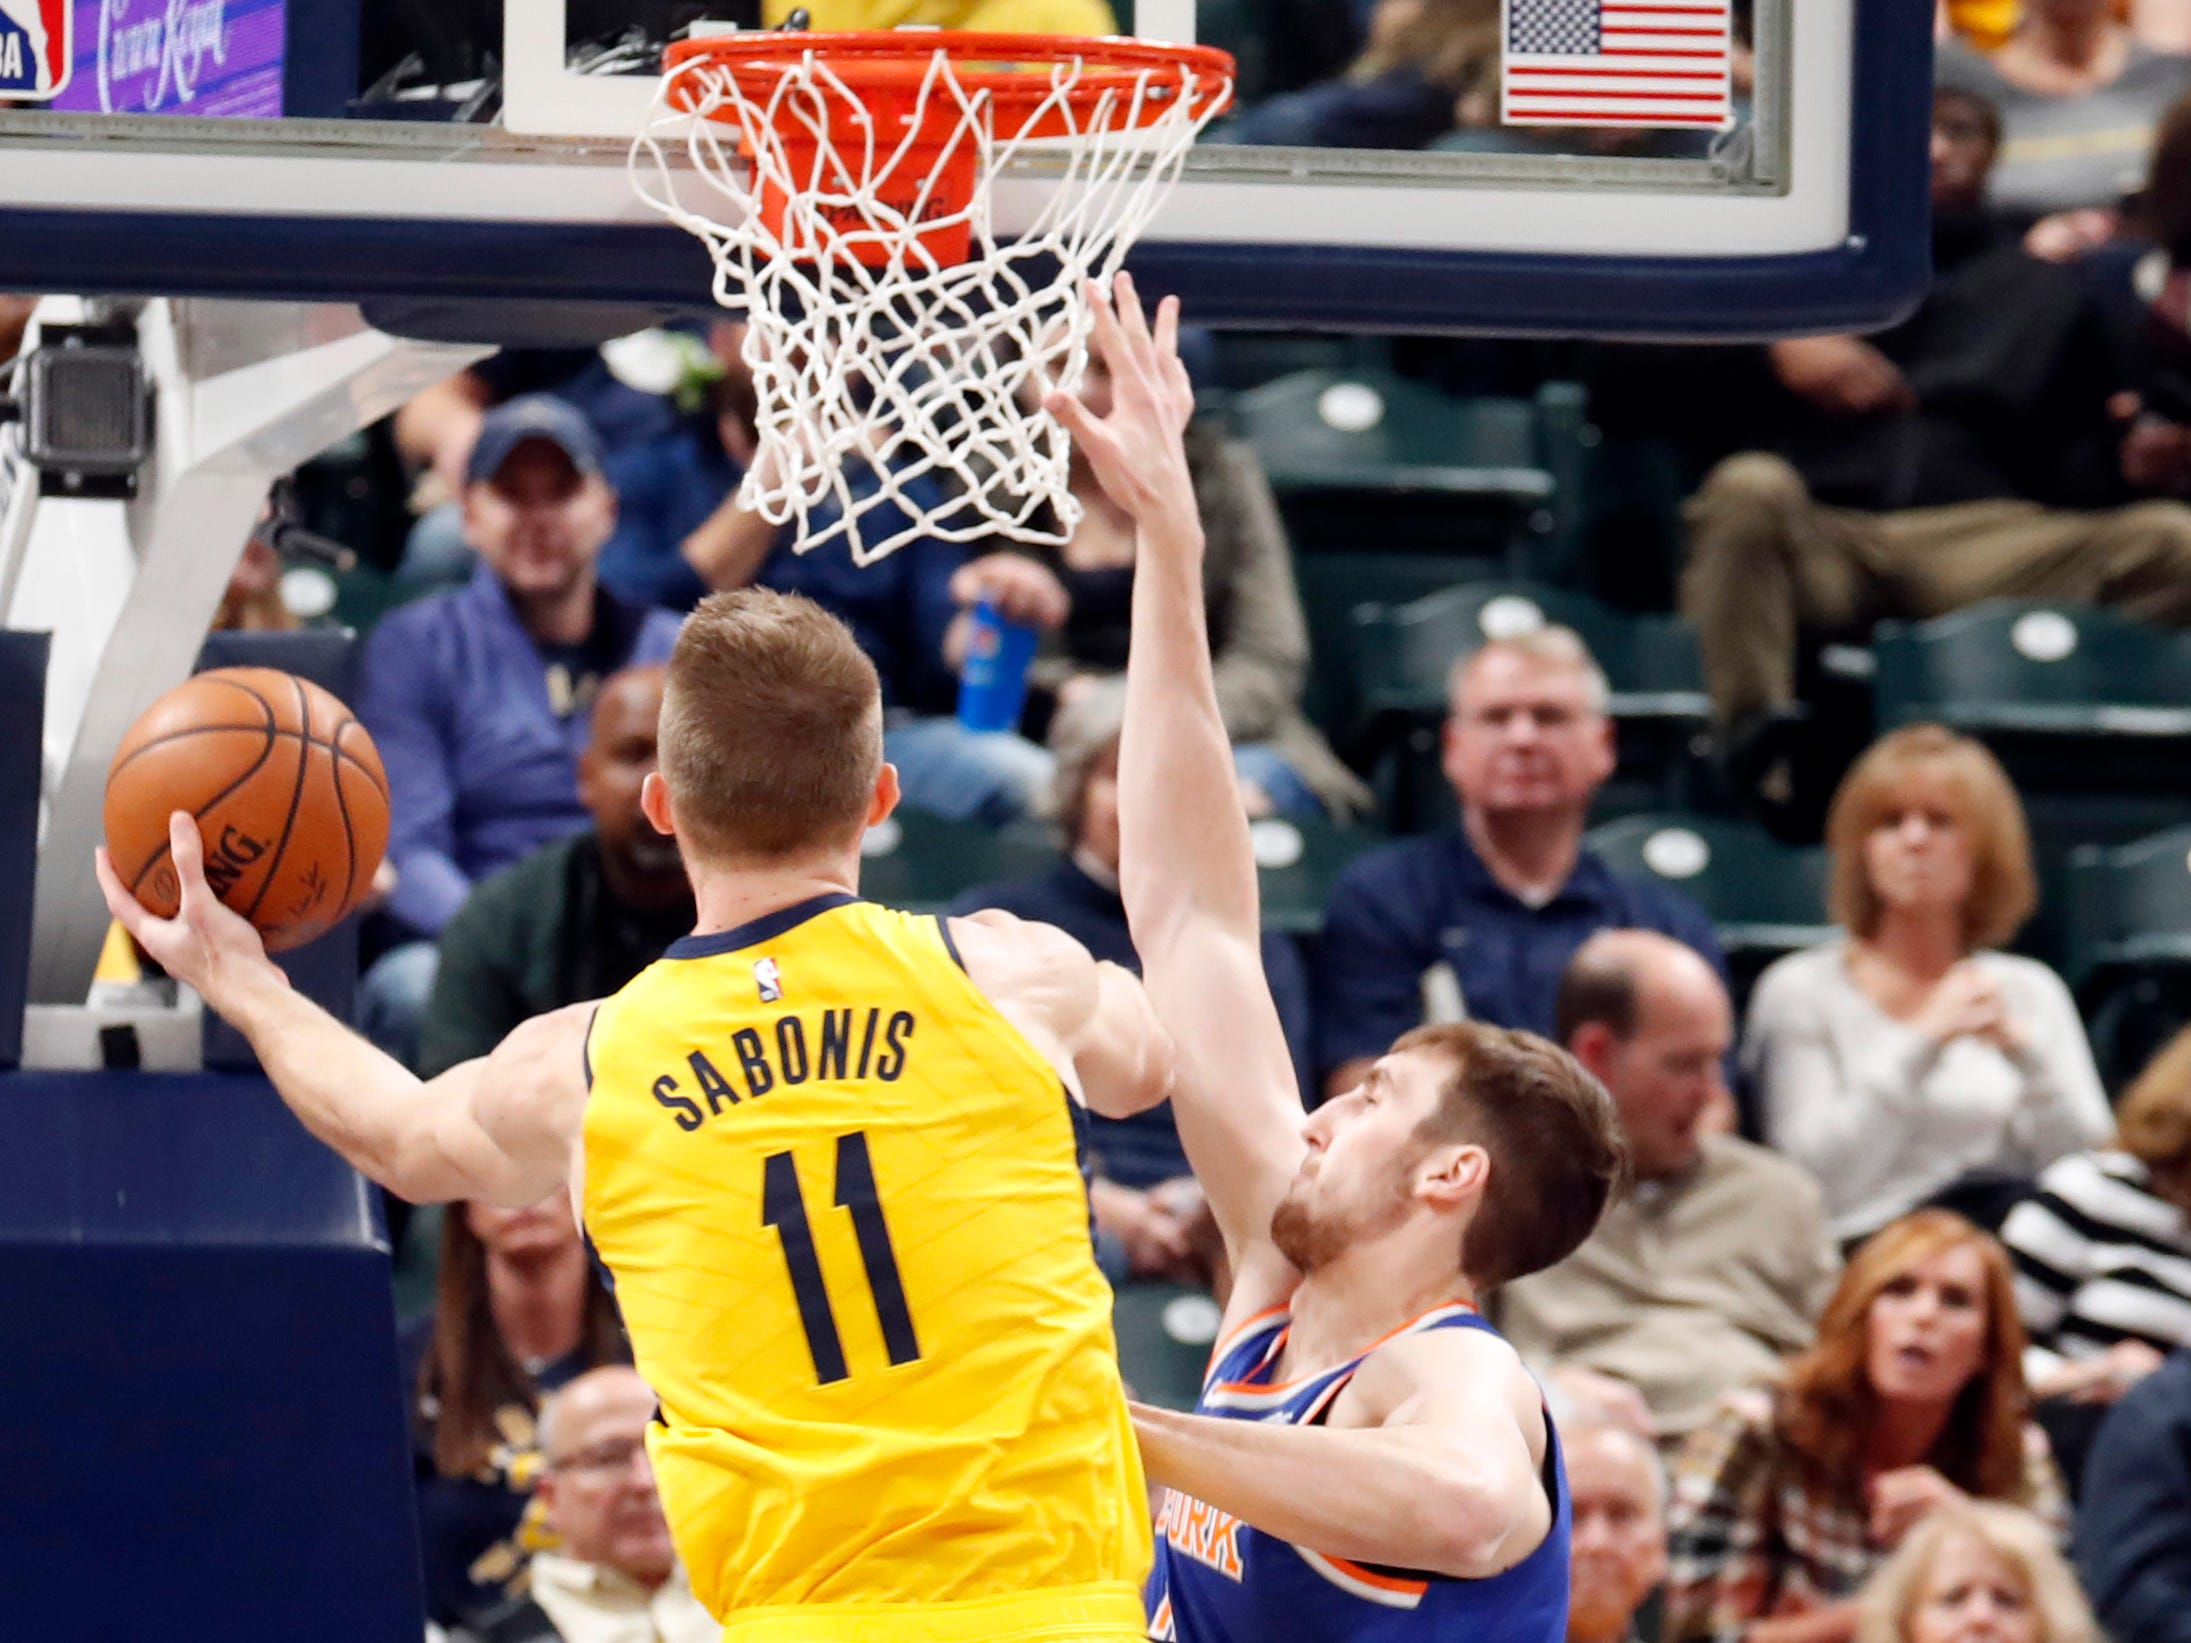 Dec 16, 2018; Indianapolis, IN, USA; Indiana Pacers forward Domantas Sabonis (11) goes up for a shot against New York Knicks center Luke Kornet (2) during the first quarter at Bankers Life Fieldhouse.